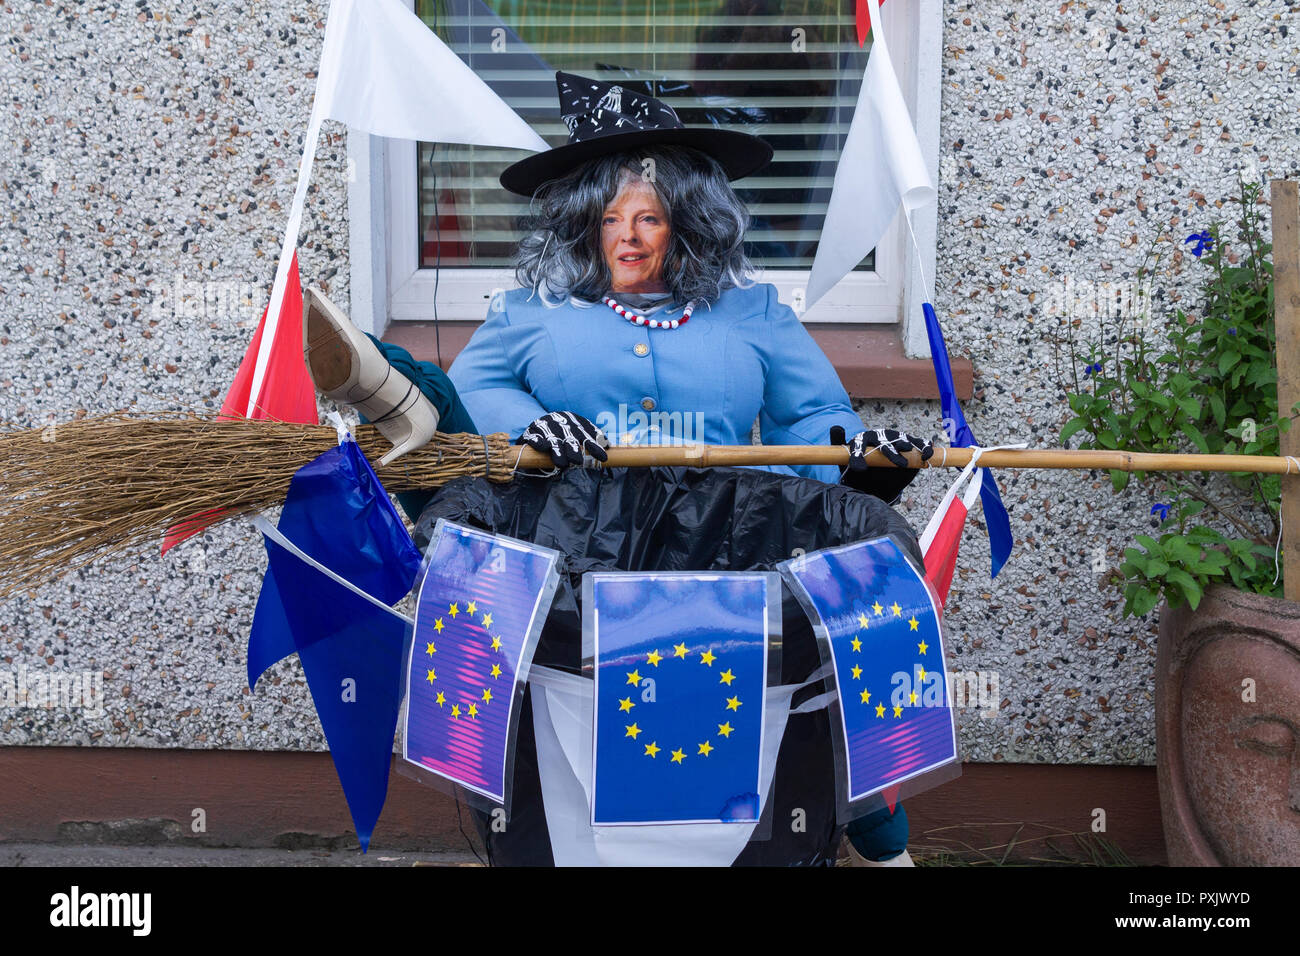 theresa-may-scarecrow-surrounded-by-european-union-flags-depicted-as-the-wicked-witch-of-brexit-in-a-front-garden-as-part-of-a-scarecrow-competition-for-halloween-PXJWYD.jpg